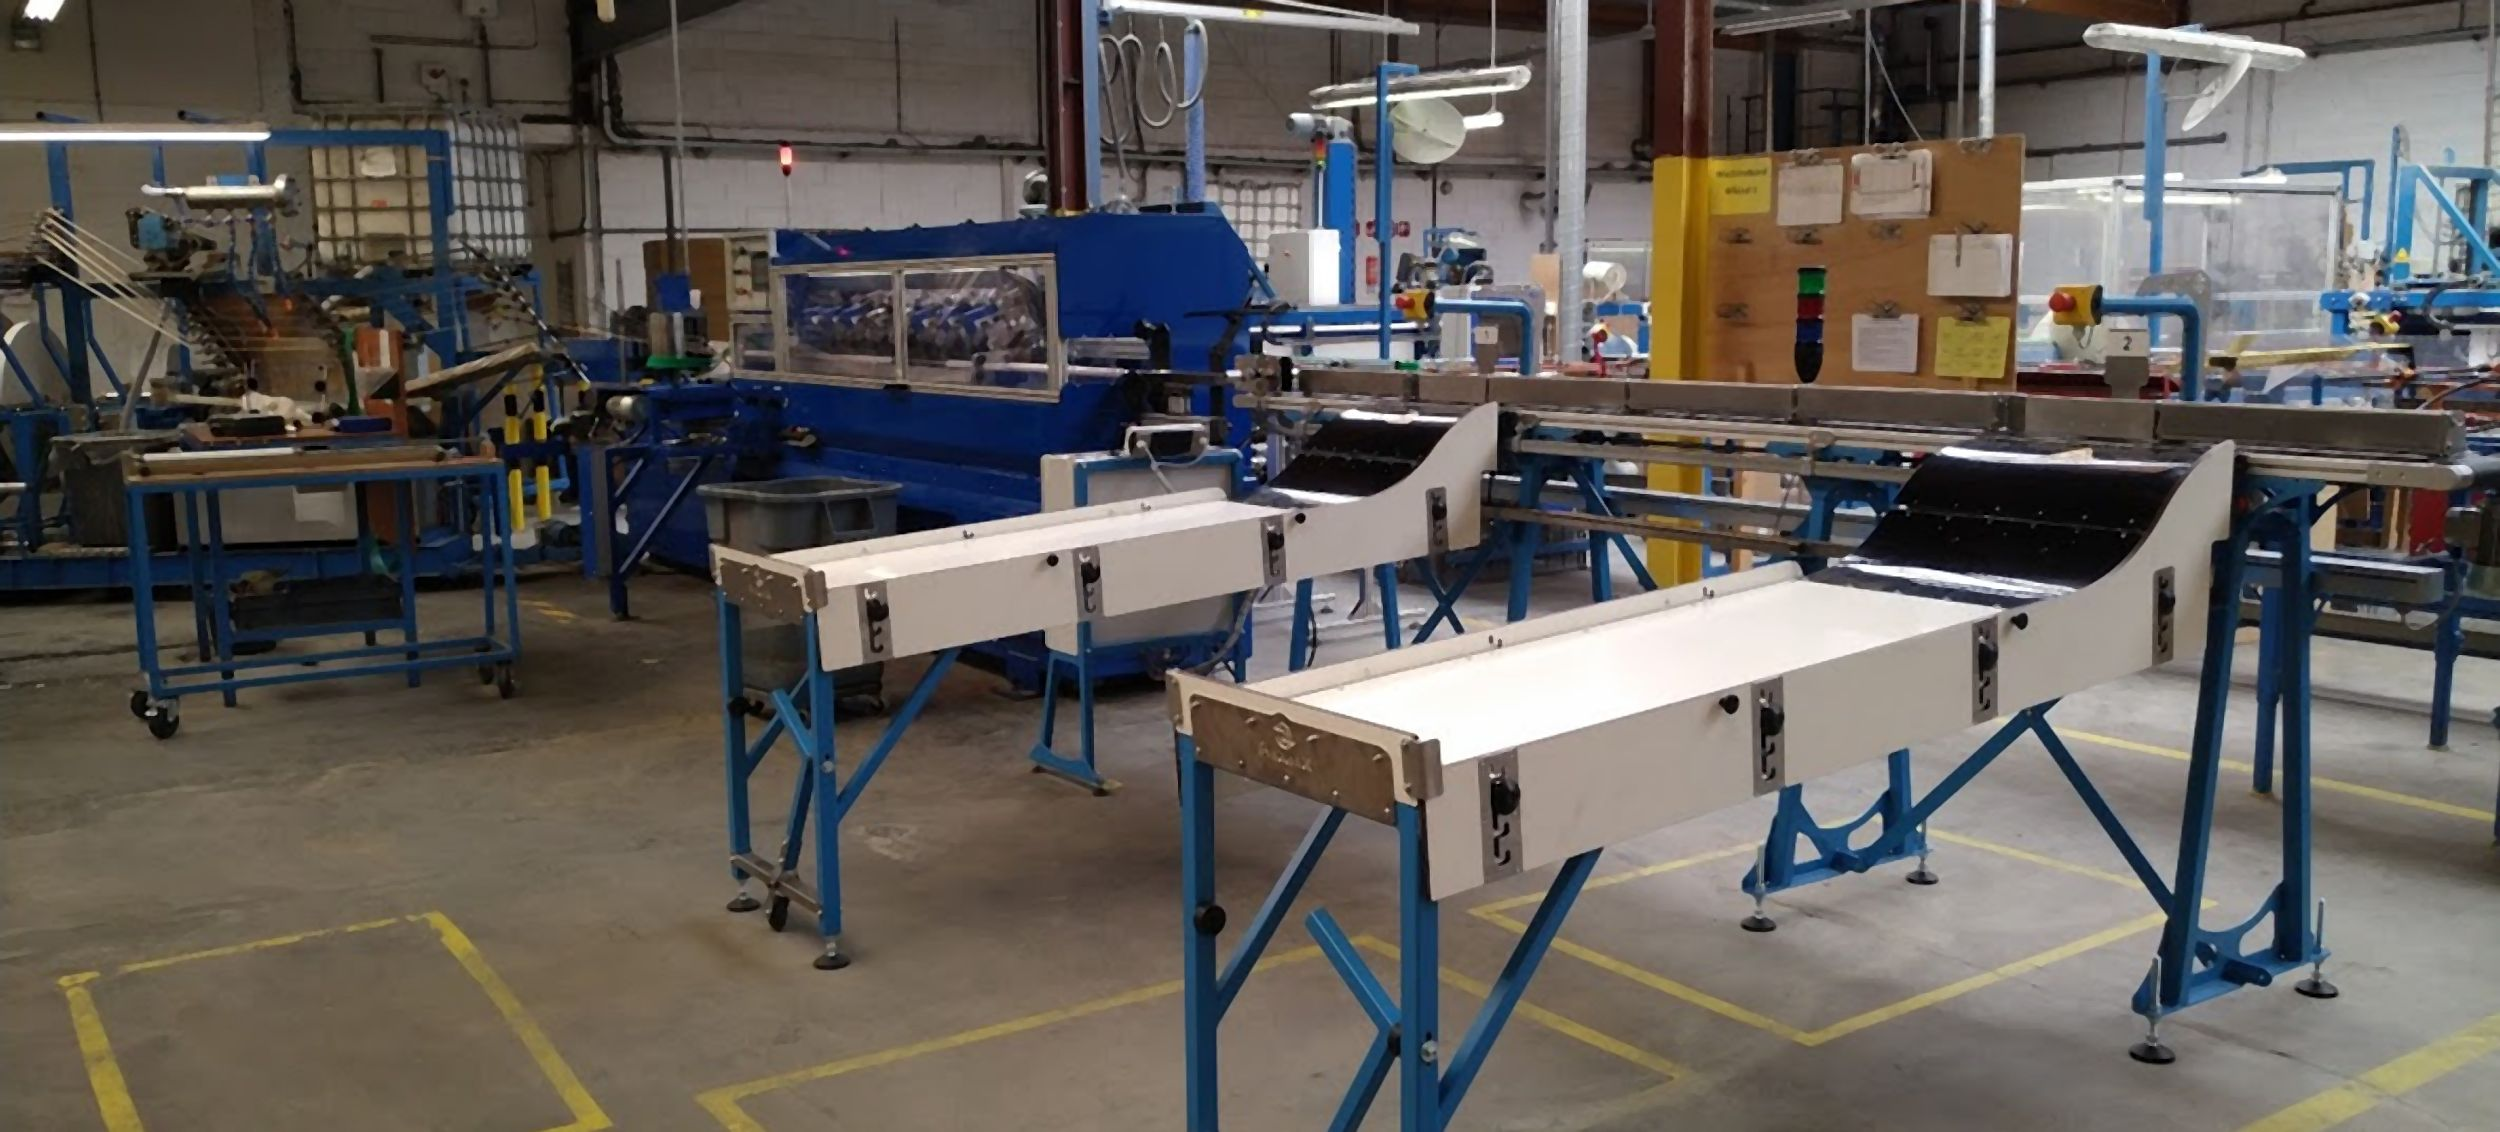 05-banner-machinebouw